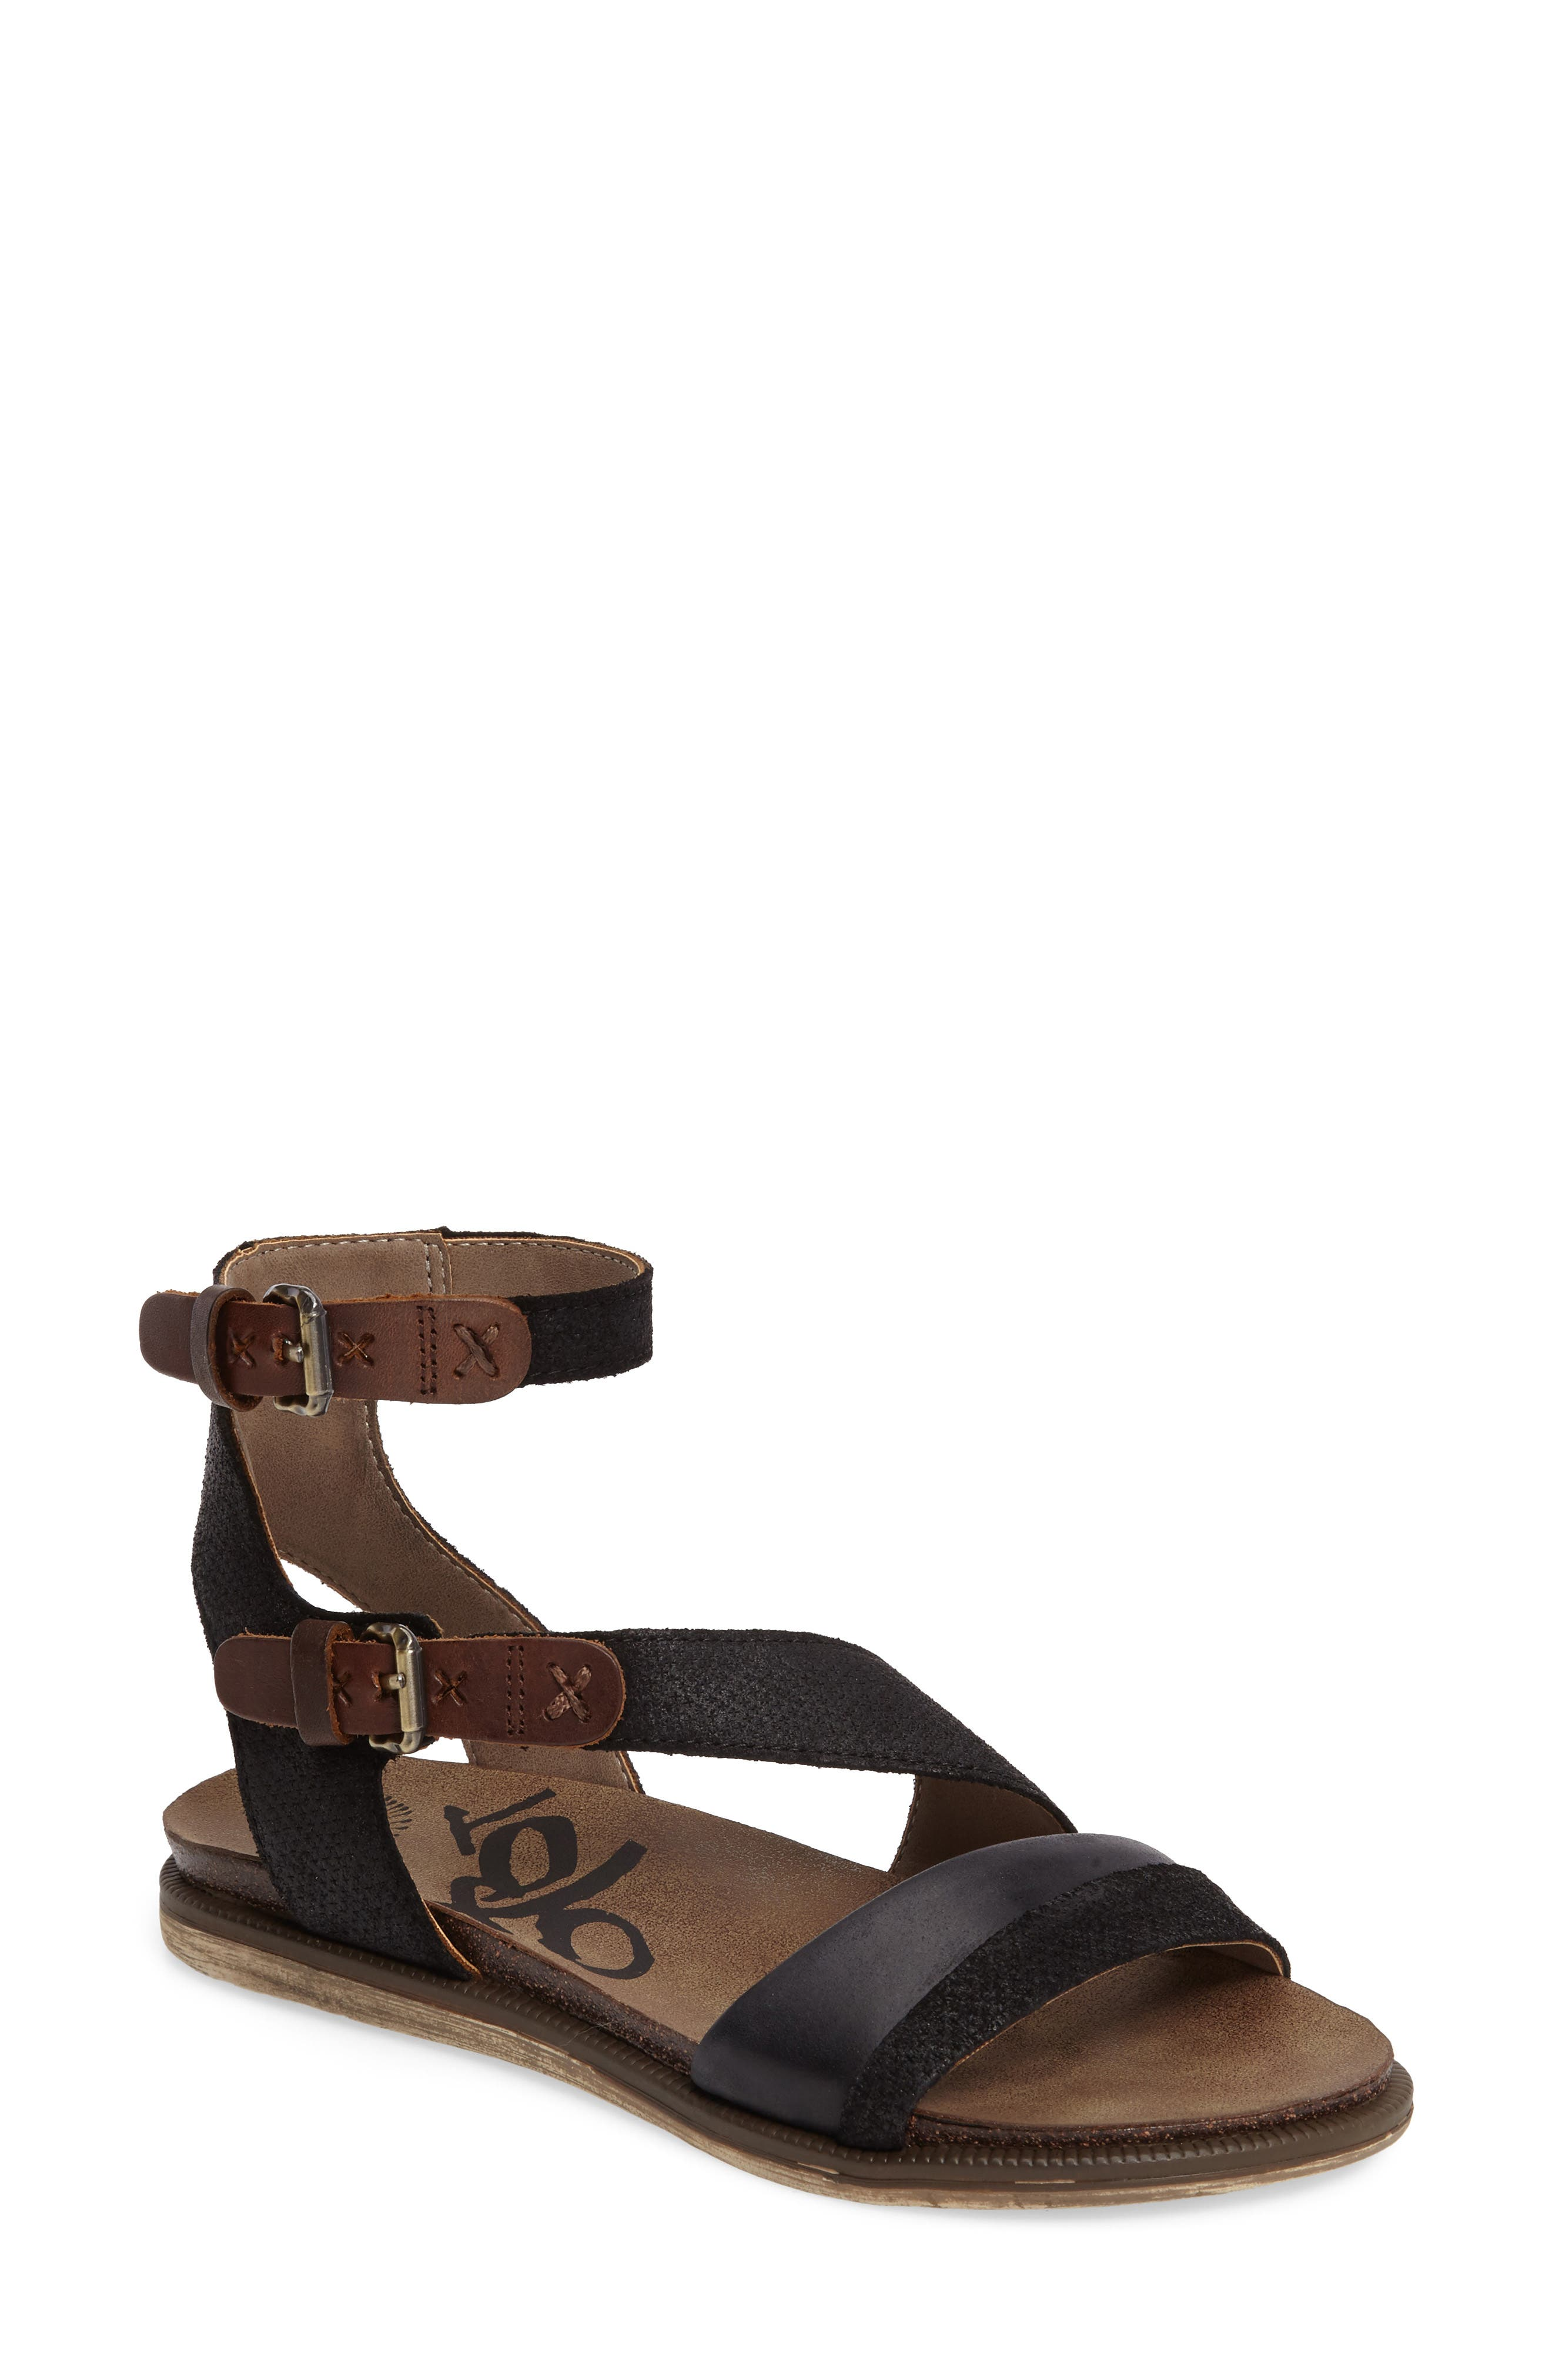 March On Flat Sandal,                         Main,                         color, 001